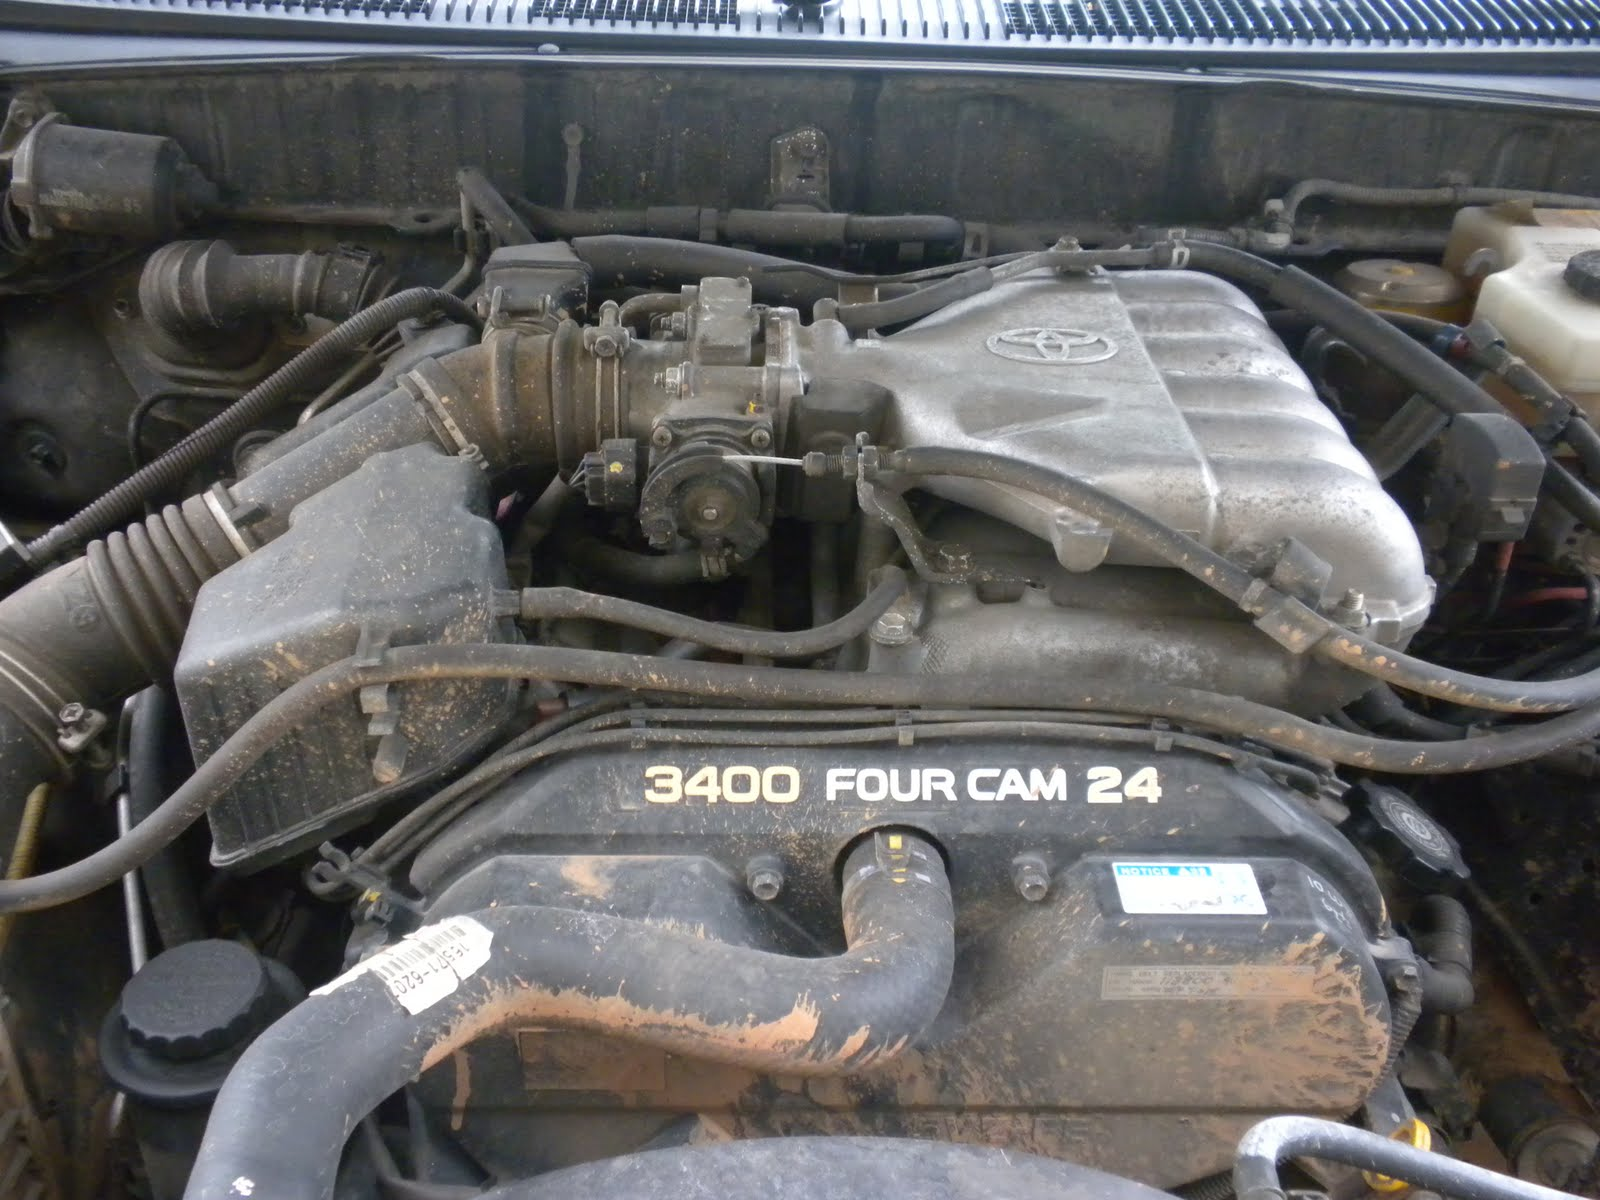 medium resolution of my car battles spark plug wires on my 02 toyota 4runner 3 4 l v6 rh mycarbattles blogspot com 3400 engine performance 3400 sfi v6 engine diagram